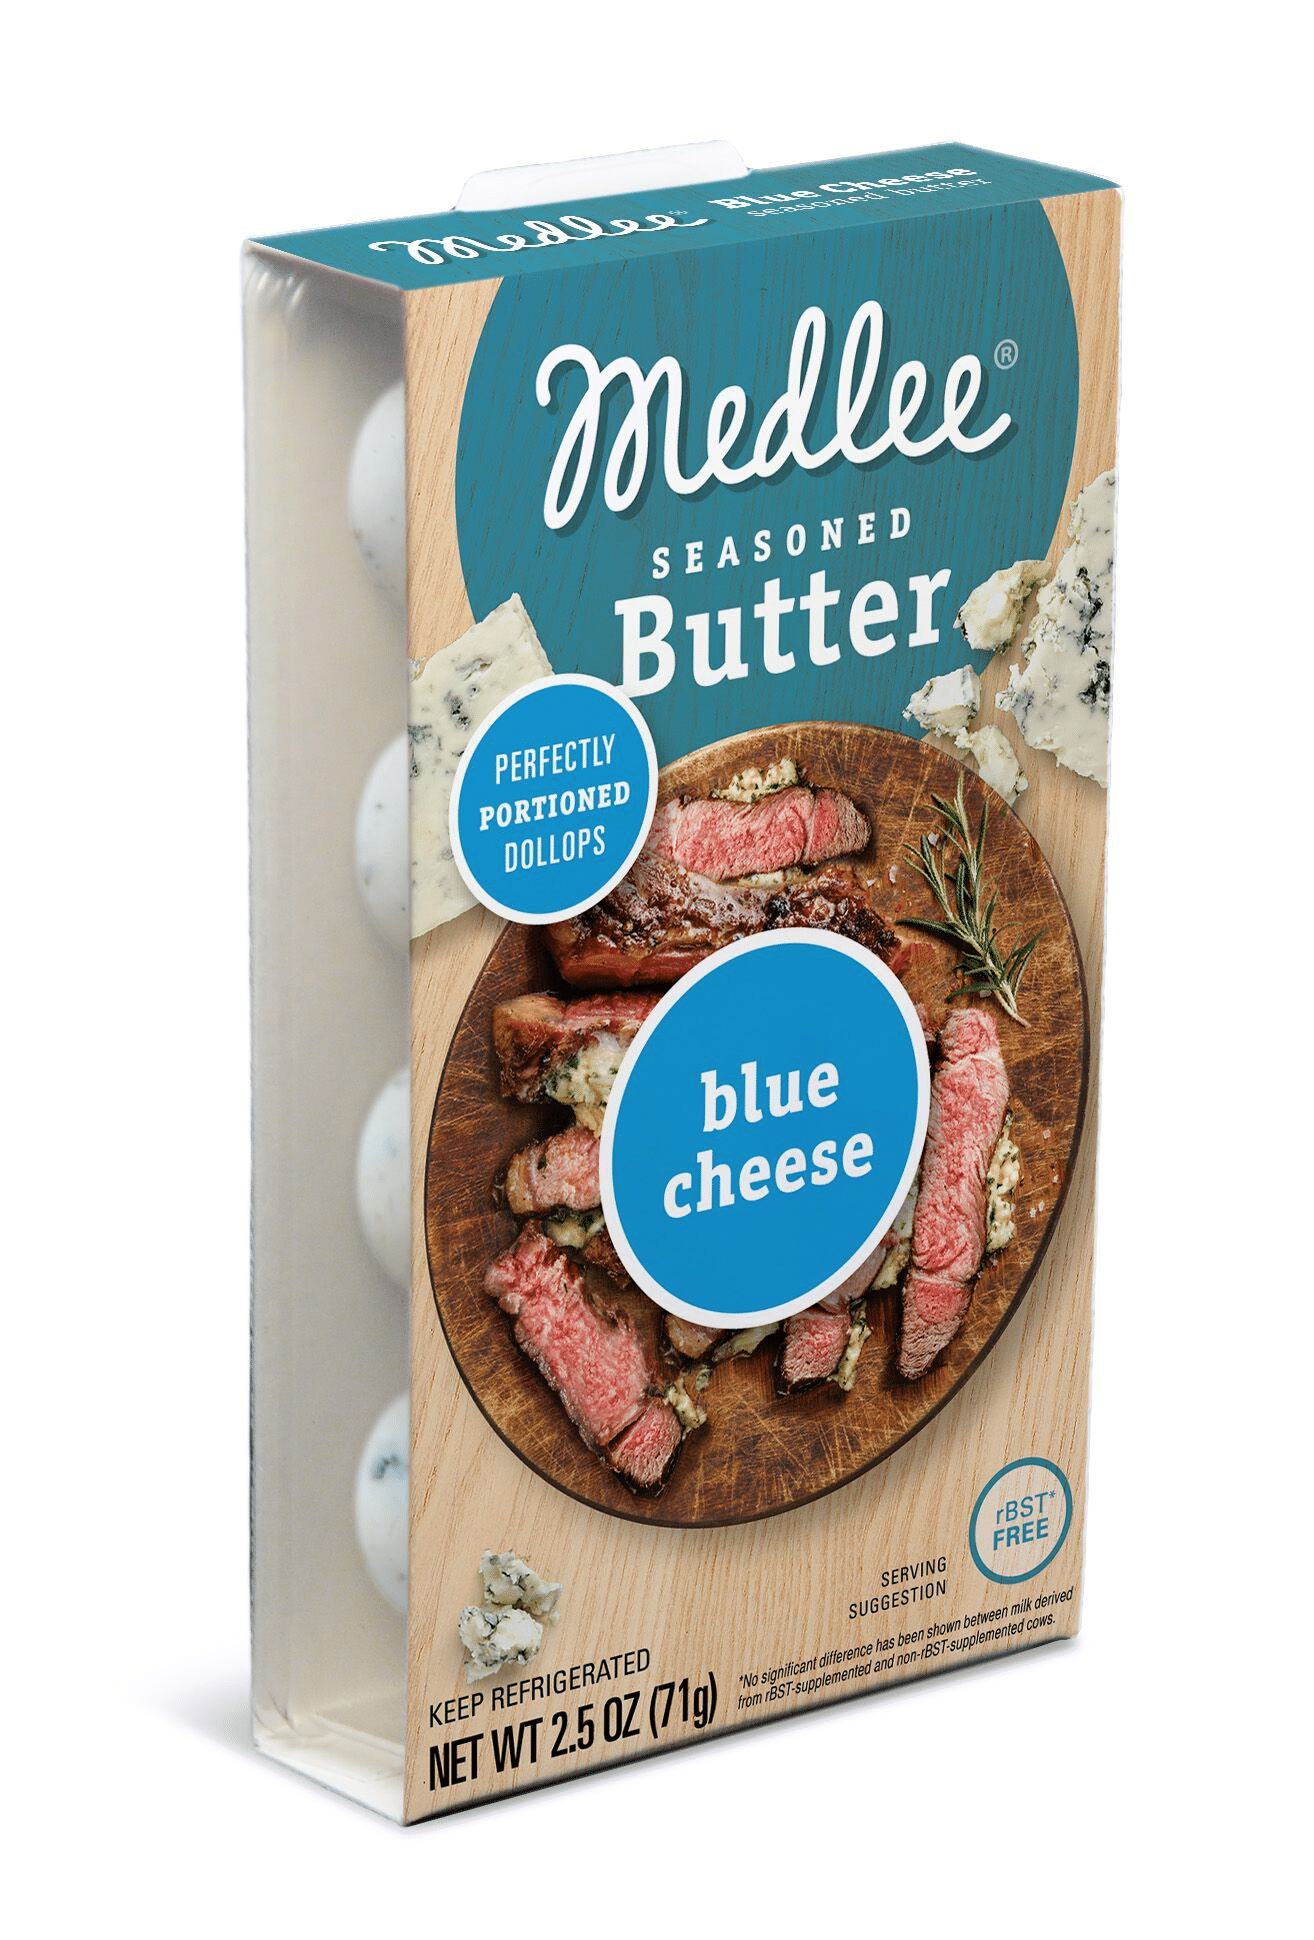 Medlee Foods Launches Blue Cheese Seasoned Butter